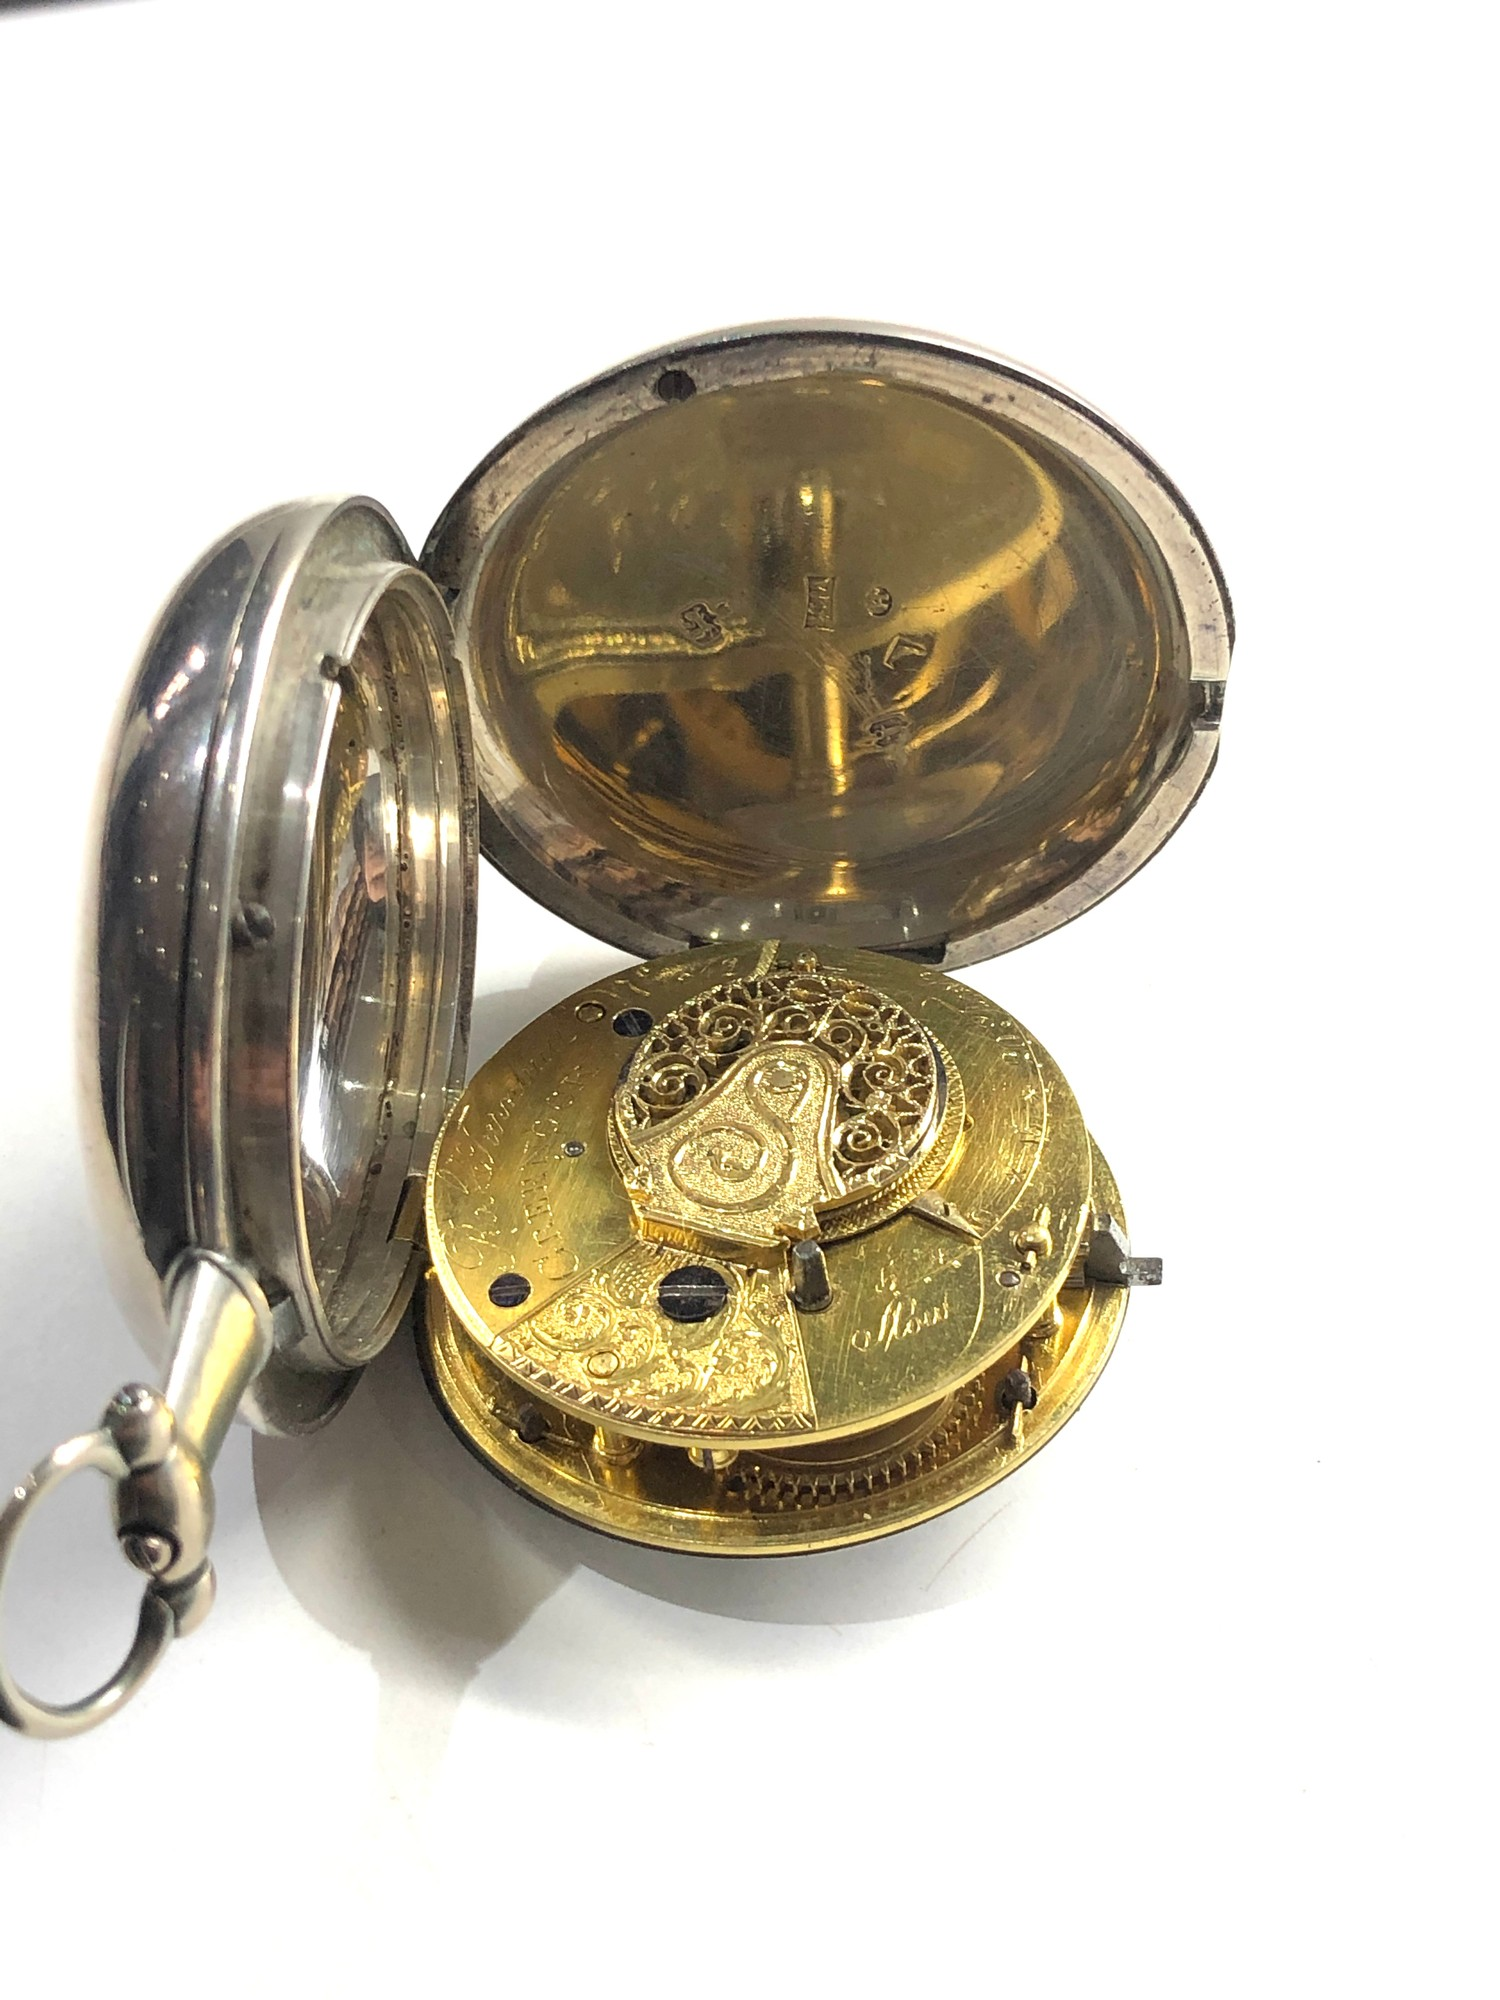 Fine antique silver full hunter case verge fusee pocket watch by Rob Turnball Greenock watch is in - Image 3 of 9